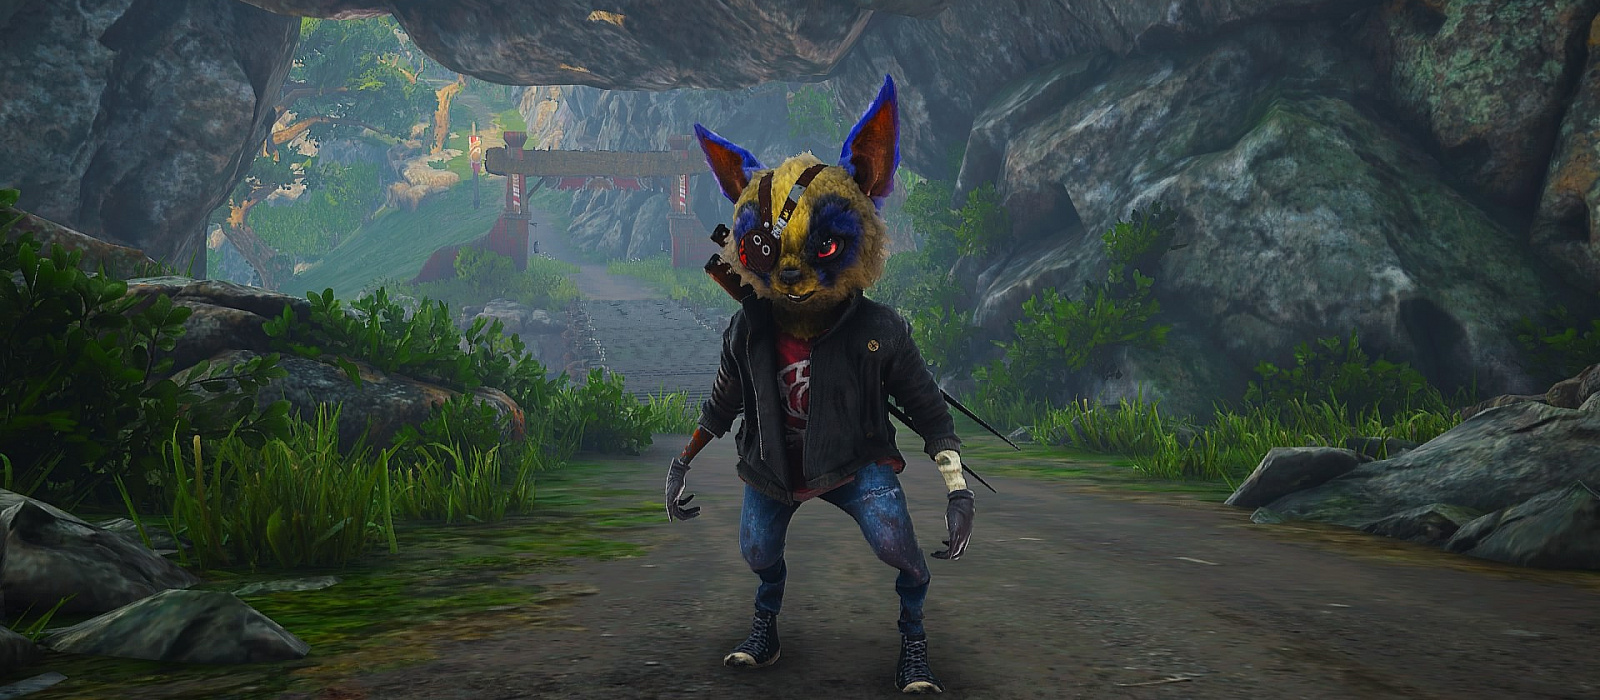 Where to find the best weapons in Biomutant - sword, mace, gloves, staff, rolling pin, carrot, ax, pistol, bow. How to craft and upgrade weapons